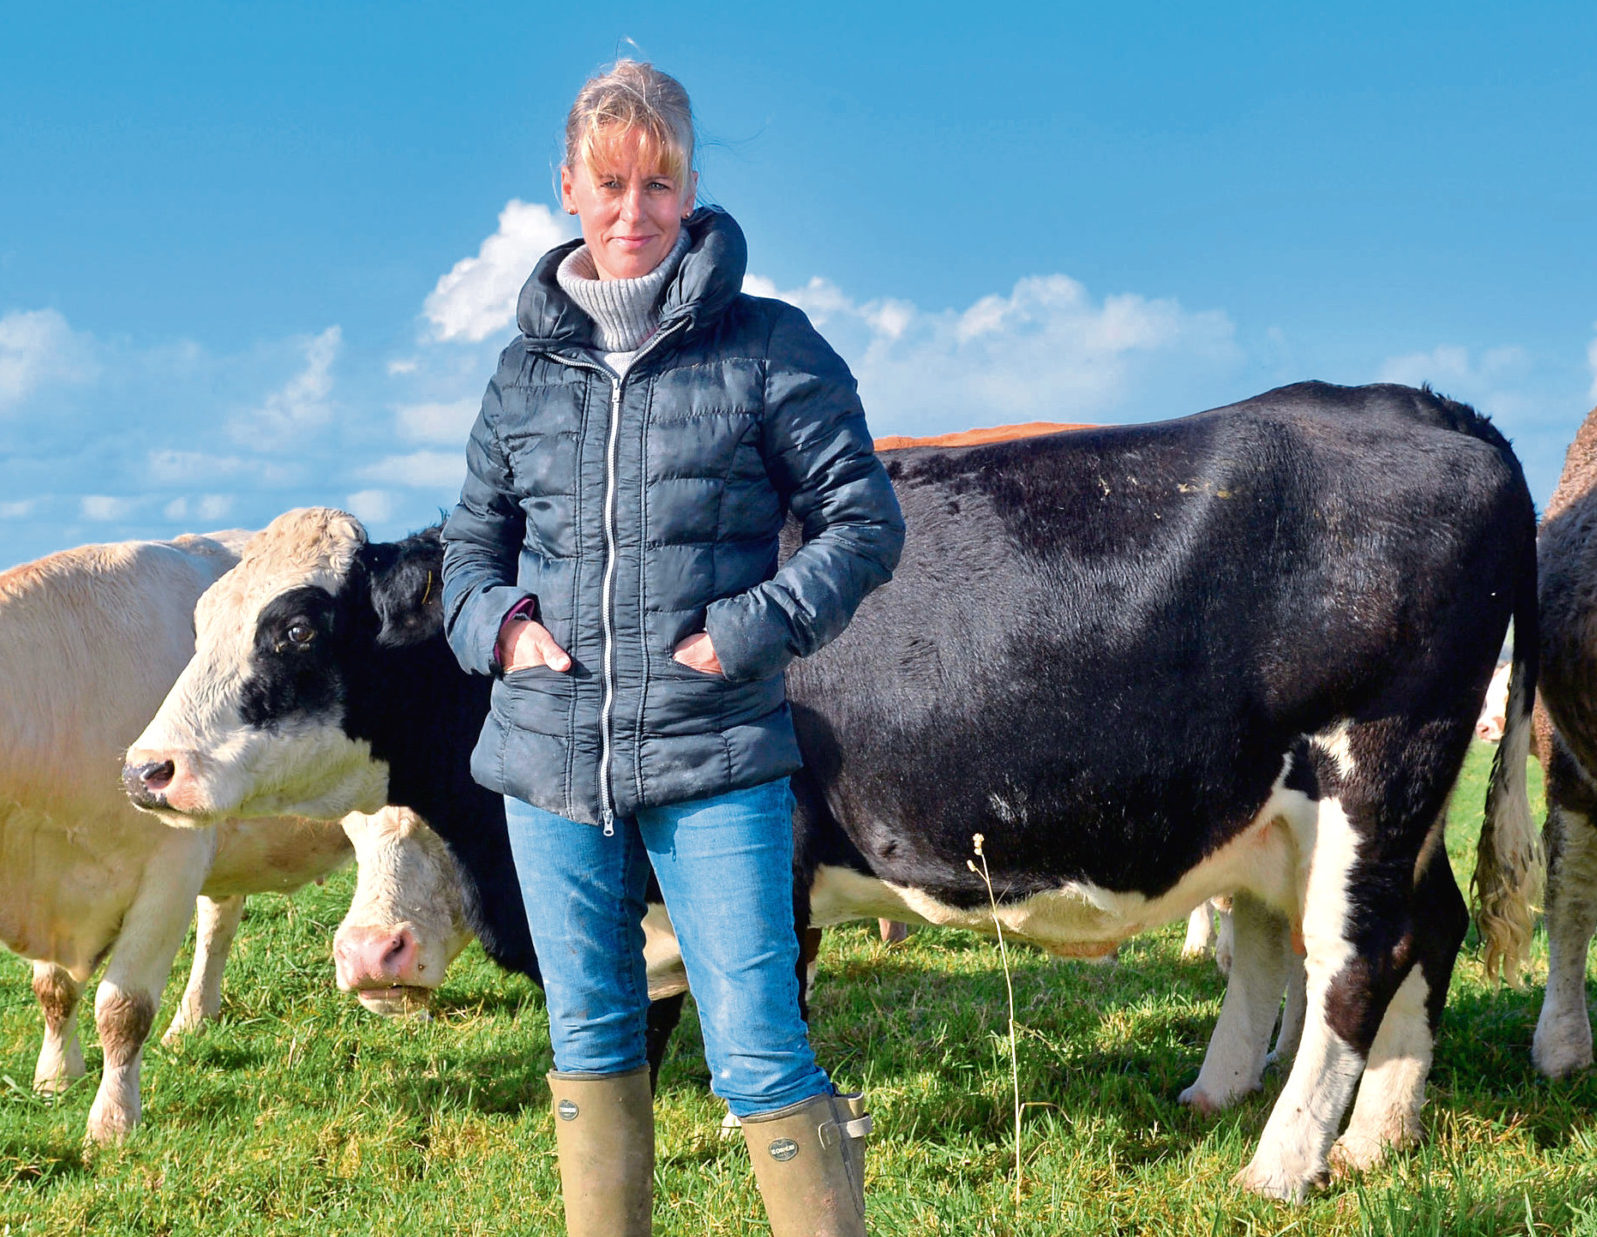 Minette Batters, NFU England and Wales president, insists the UK Government must not allow imports of food that is produced to standards that would be illegal in the UK.